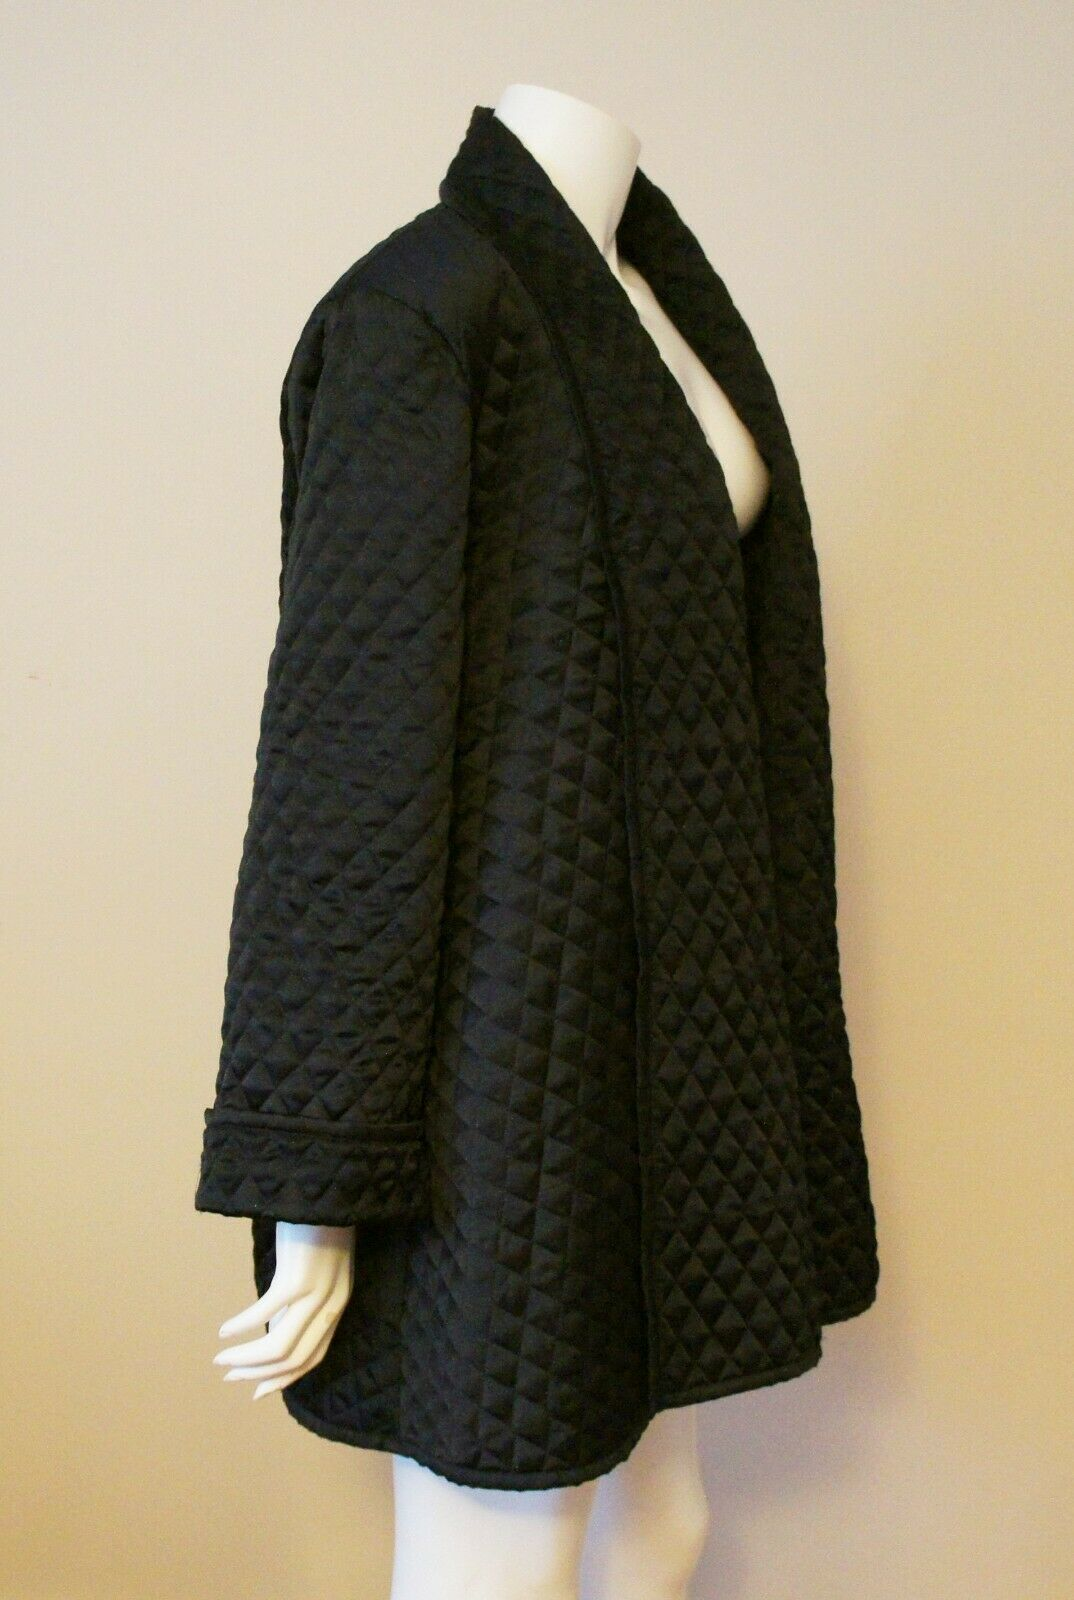 Auth Amen Wardy Black Quilted Open Jacket Sz M - image 2